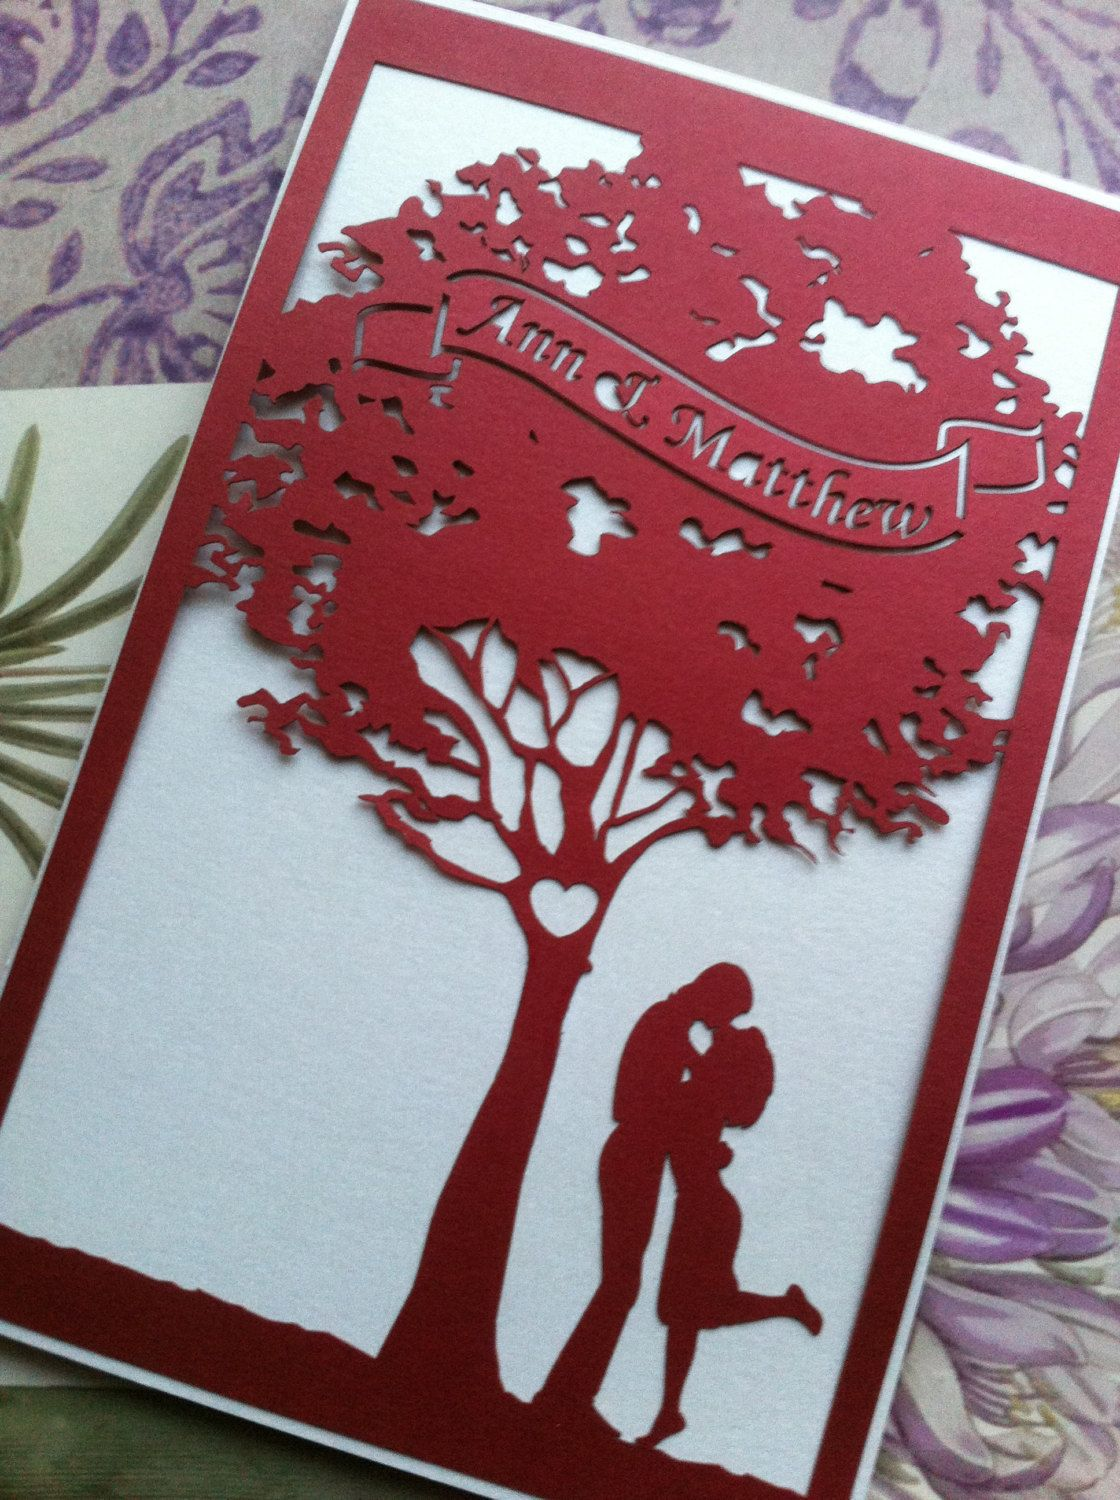 laser cut wedding invitations Love tree custom laser cut wedding invitations and reply cards LOVE DIY able invitations decorations Pinterest Wedding Facebook and Infos